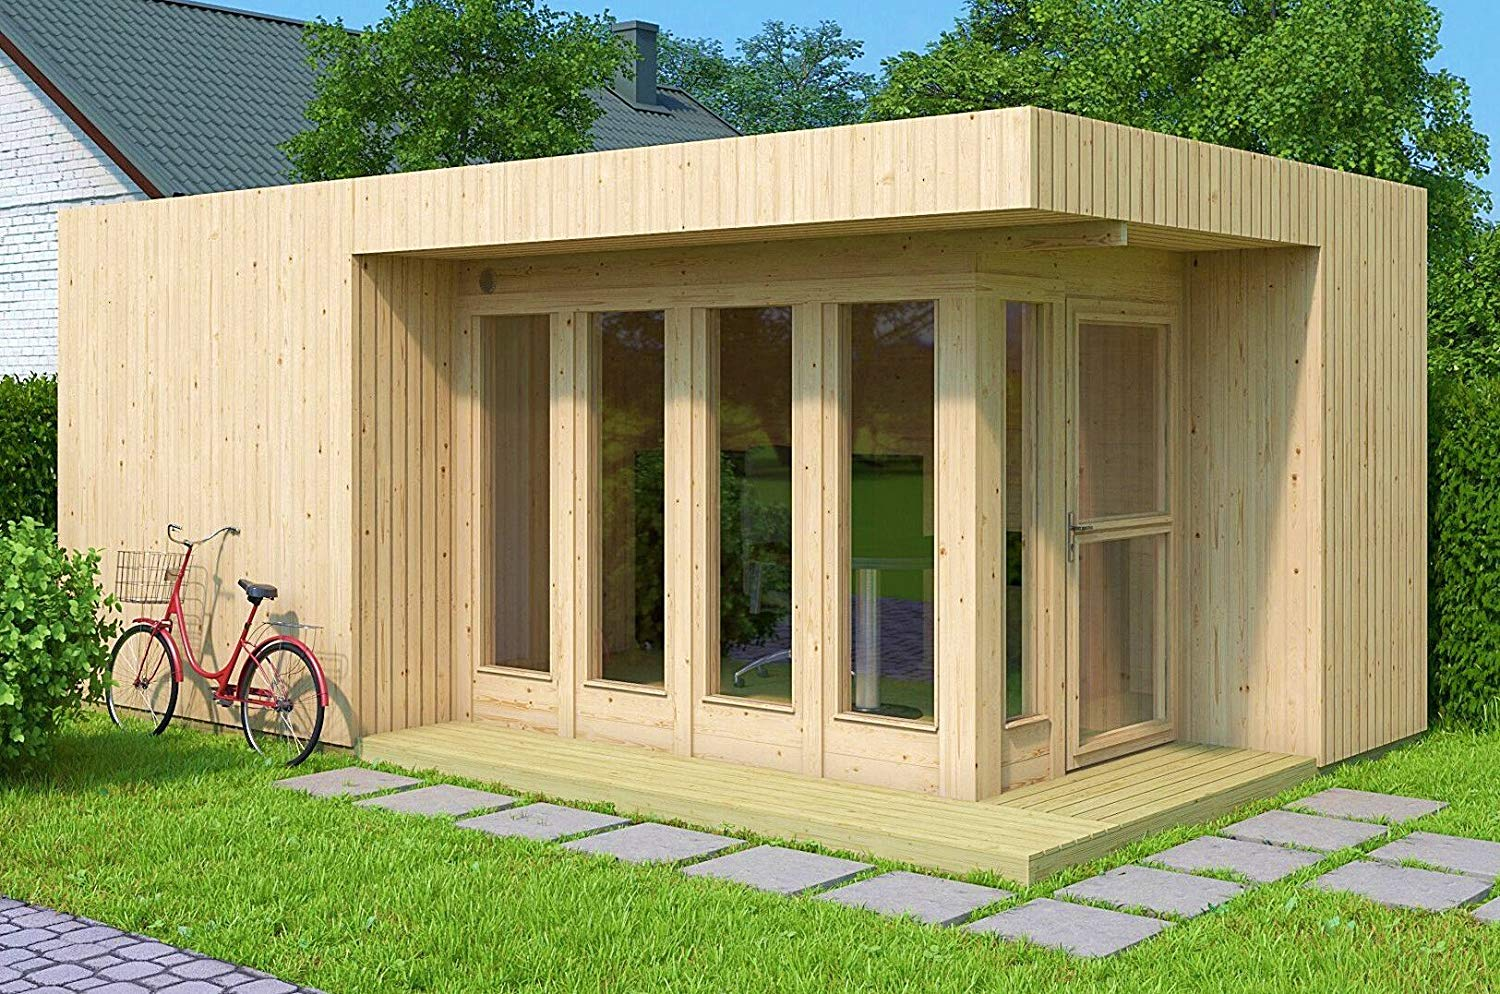 Amazon Sells A Diy Tiny House Kit You Can Build Yourself In A Few Days Bgr